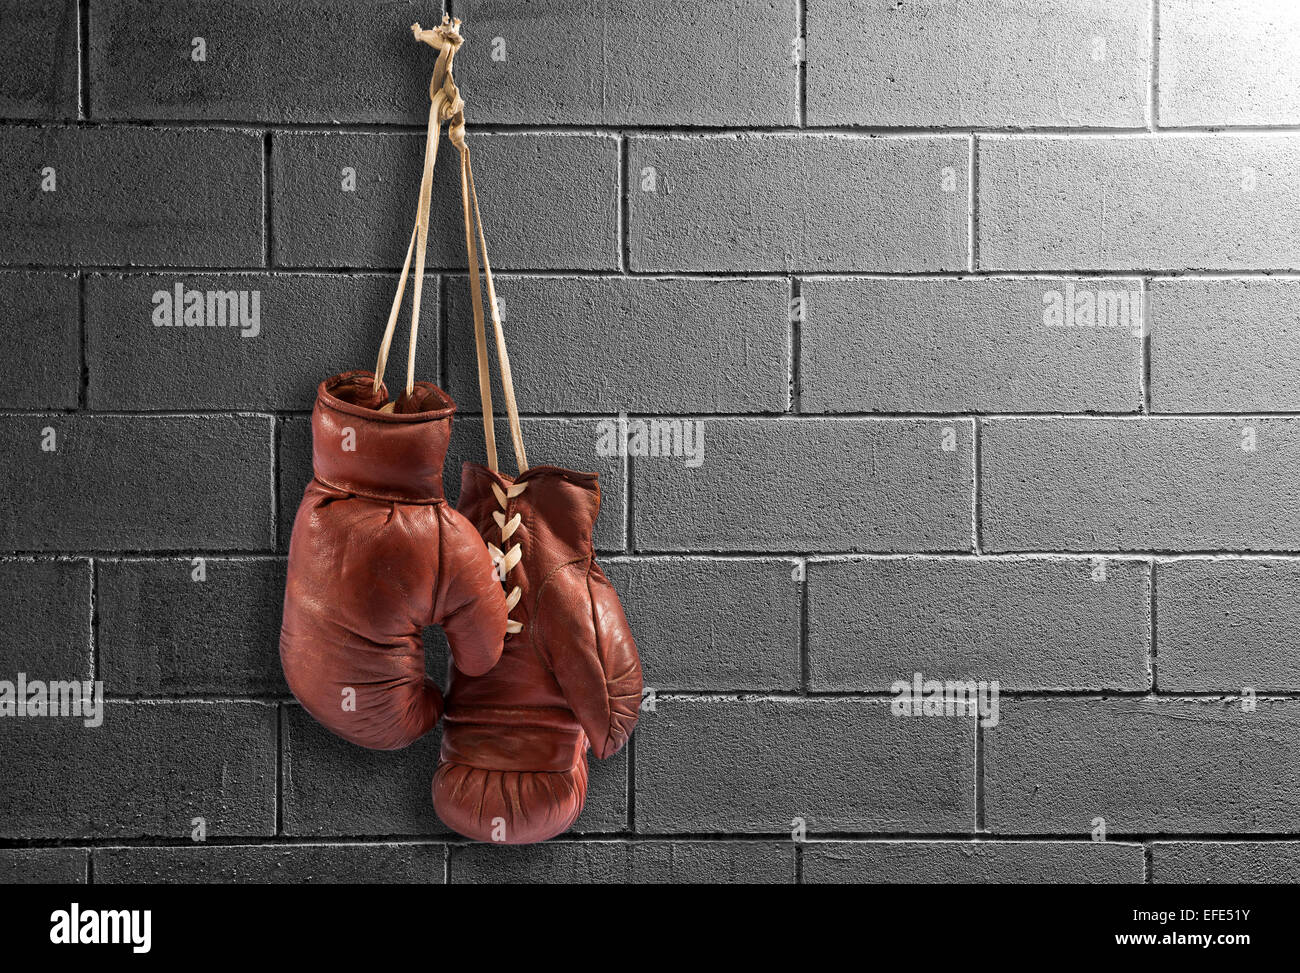 Pair of brown leather vintage boxing gloves - Stock Image